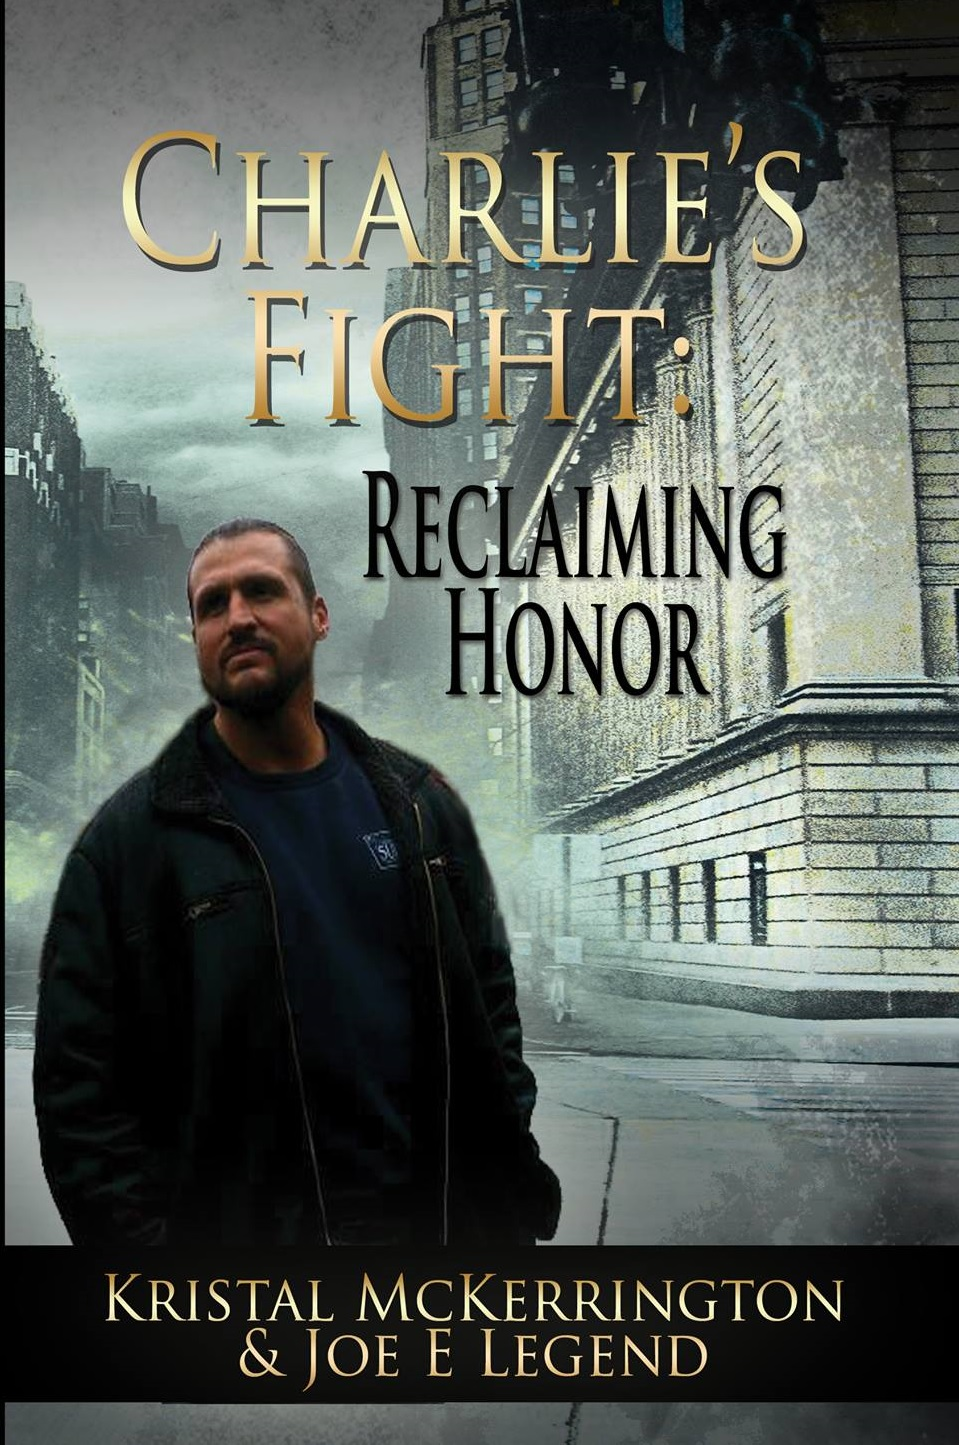 Charlie's Fight Reclaiming Honor